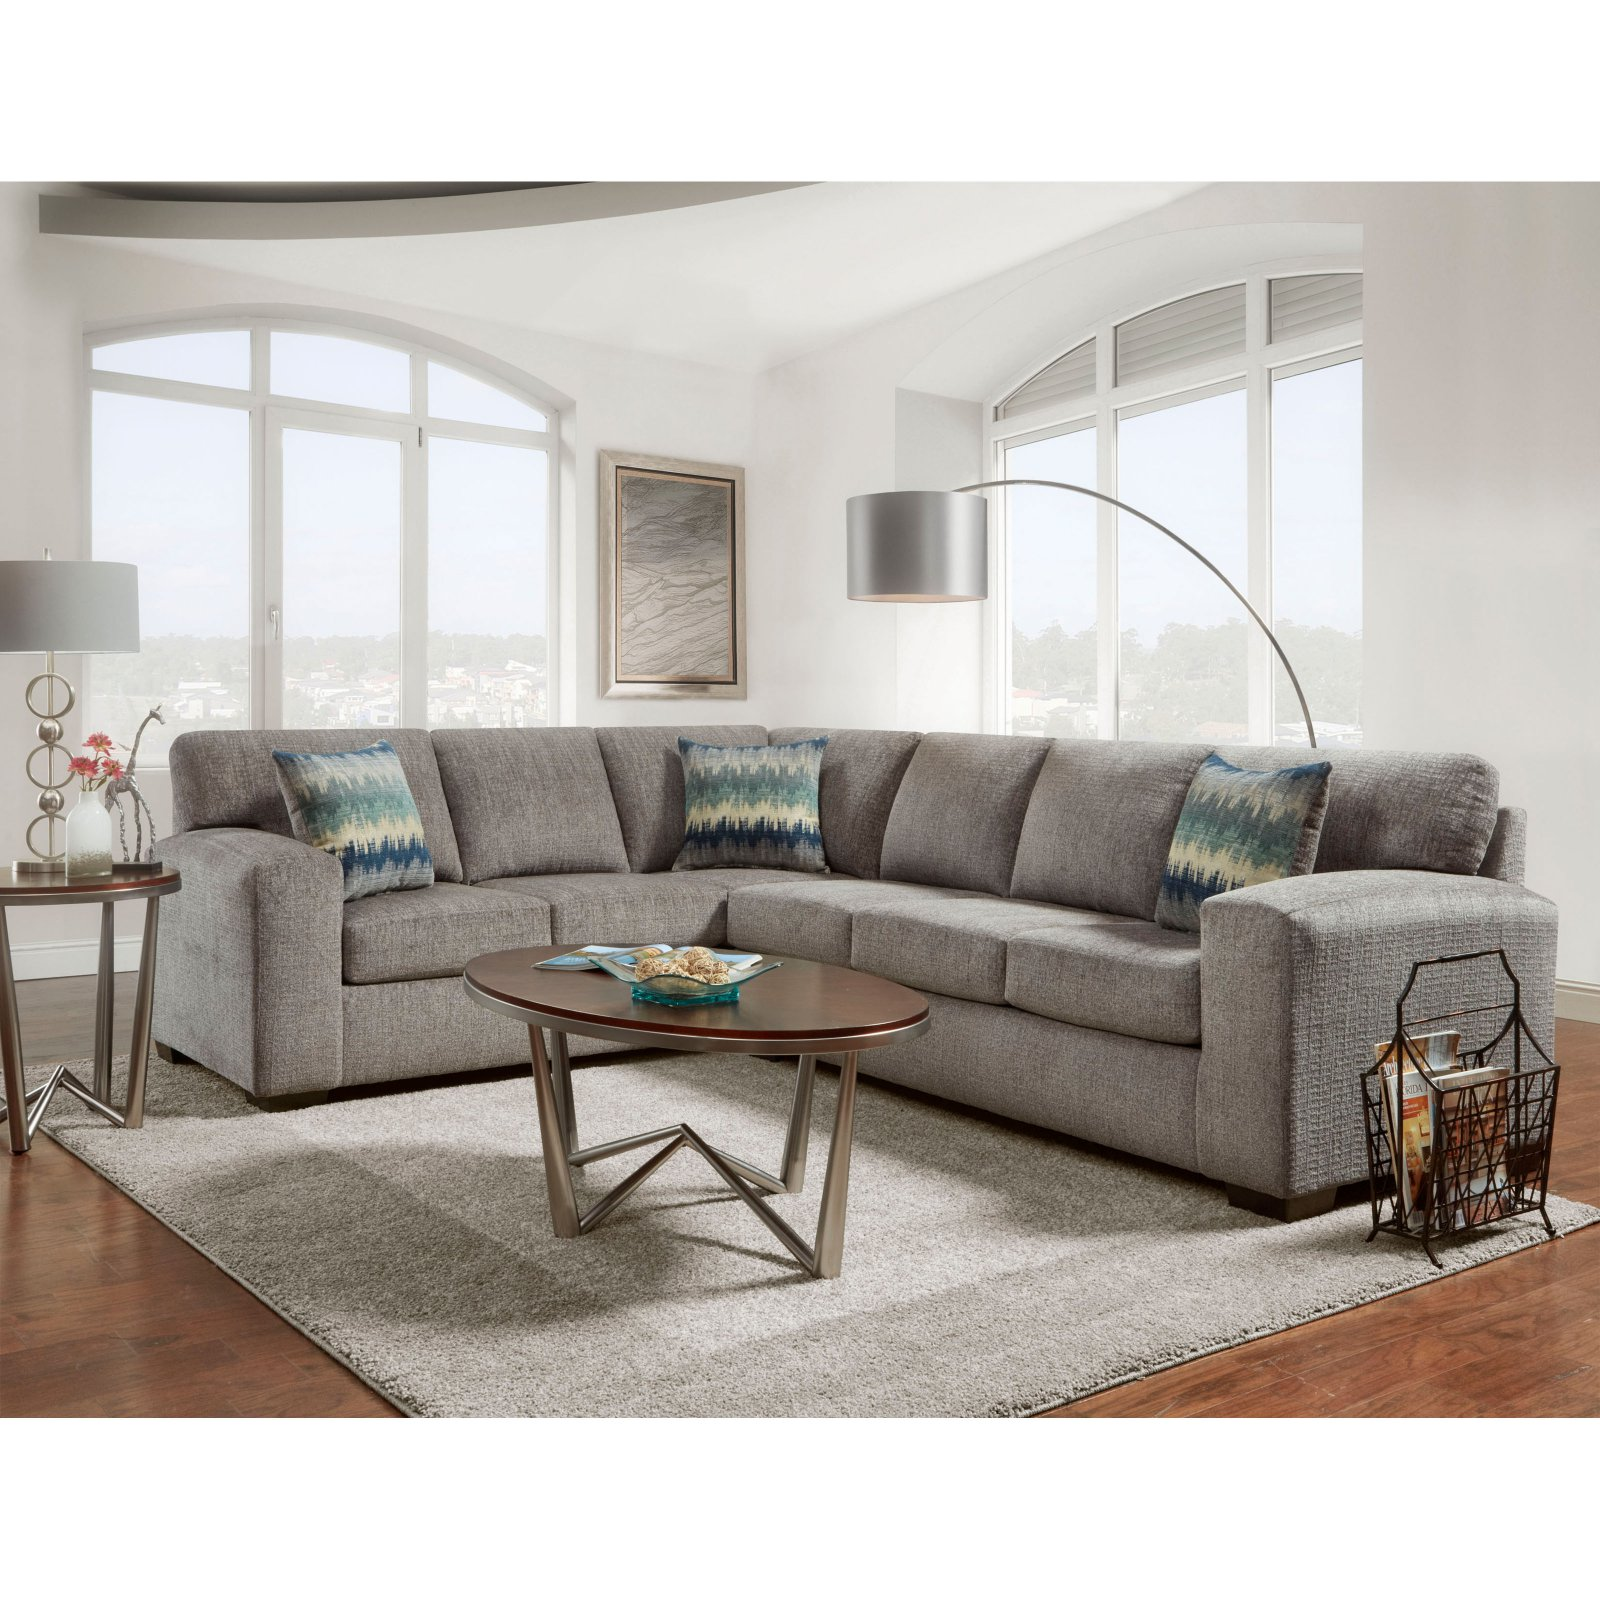 Roundhill Furniture Bergen Silverton Pewter Fabric Sectional Sofa